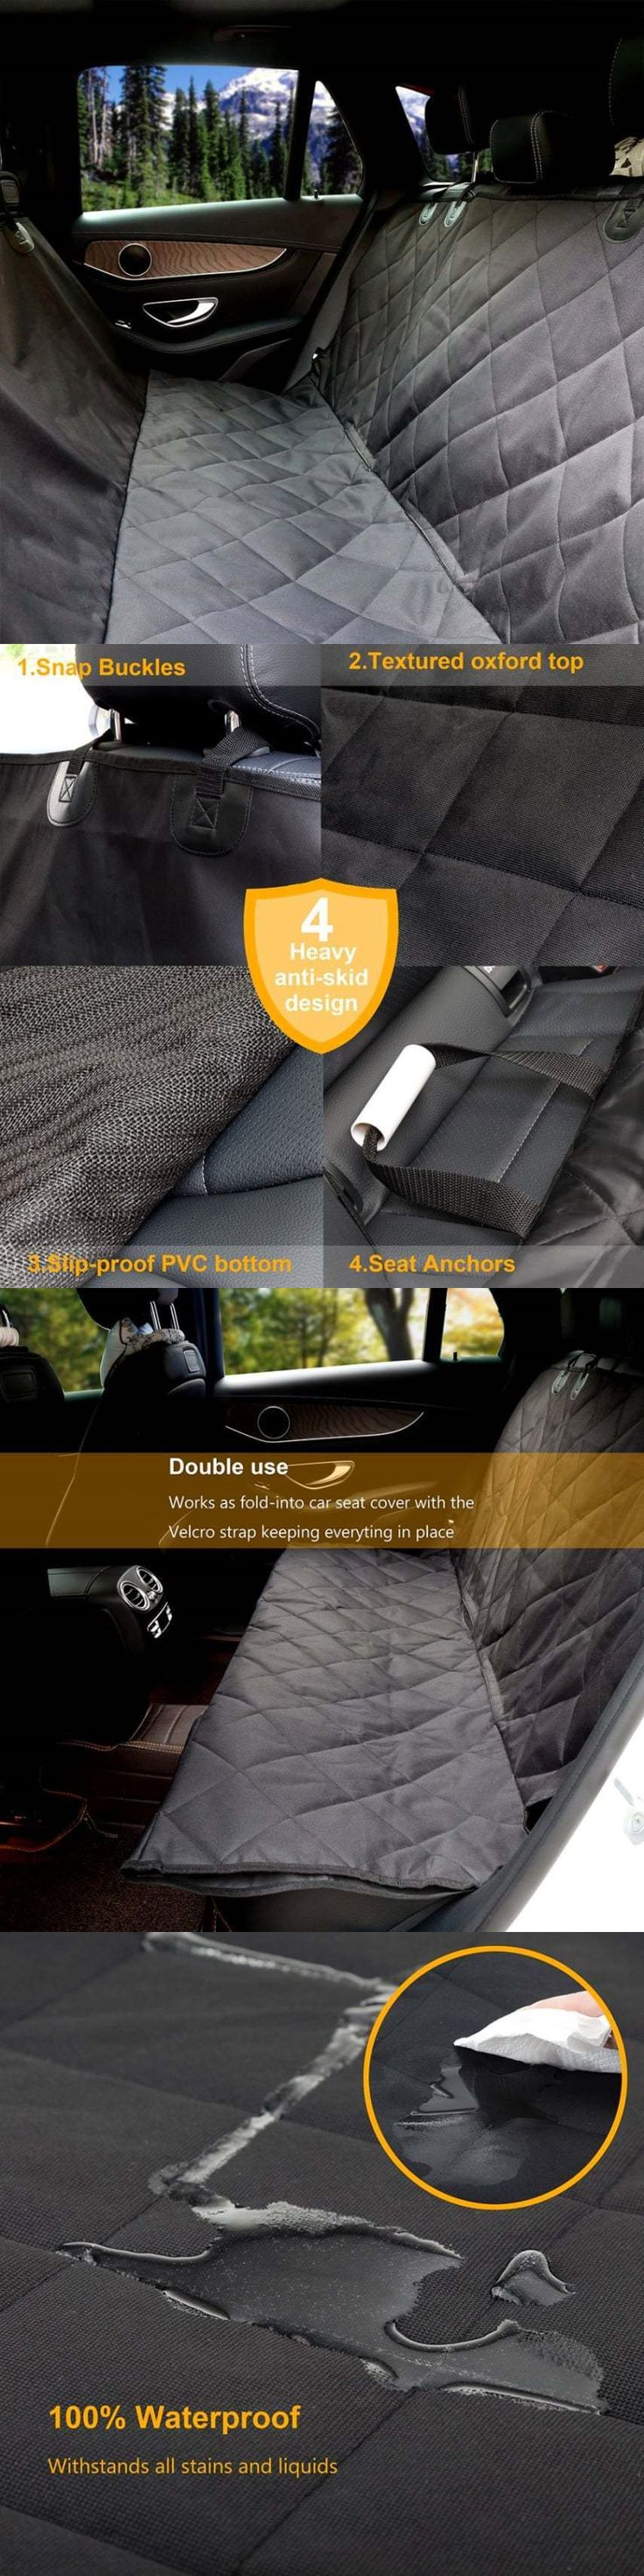 Car Seat Covers 117426: Pet Dog Car Seat Cover Rear Waterproof Hammock Back Protector Travel Truck Suv -> BUY IT NOW ONLY: $41.04 on eBay!